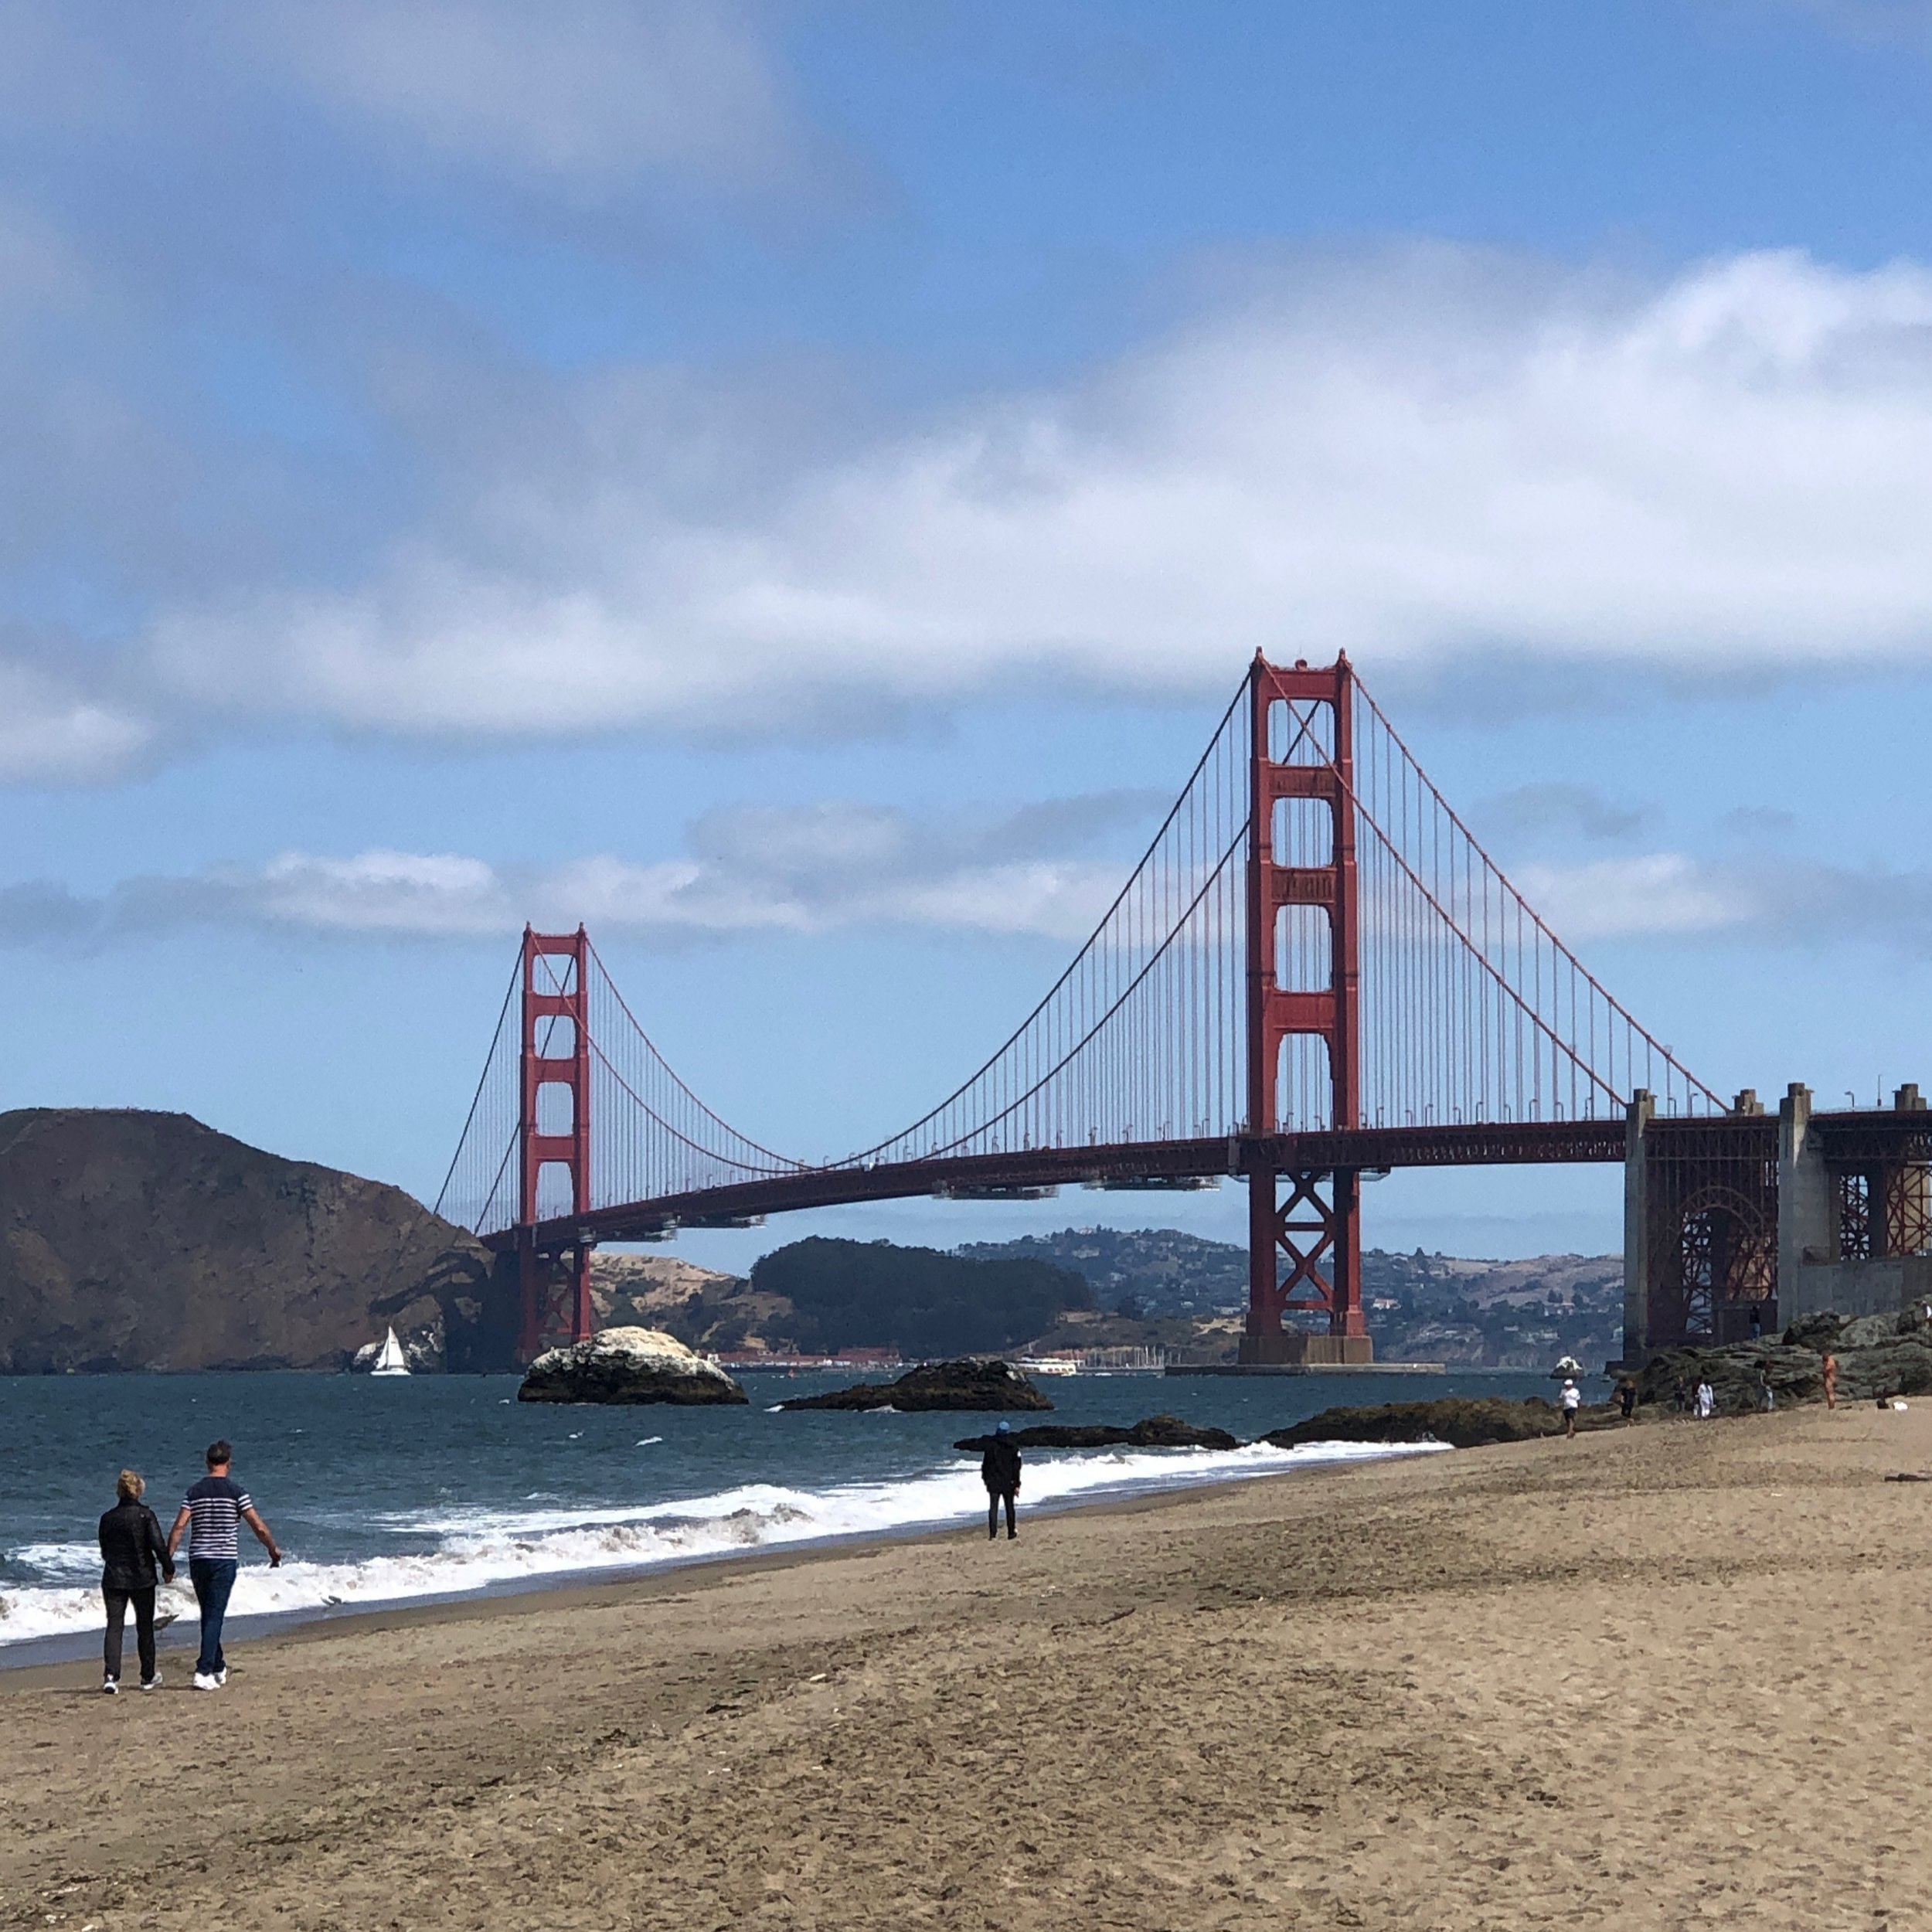 Access to Mentors from San Francisco -